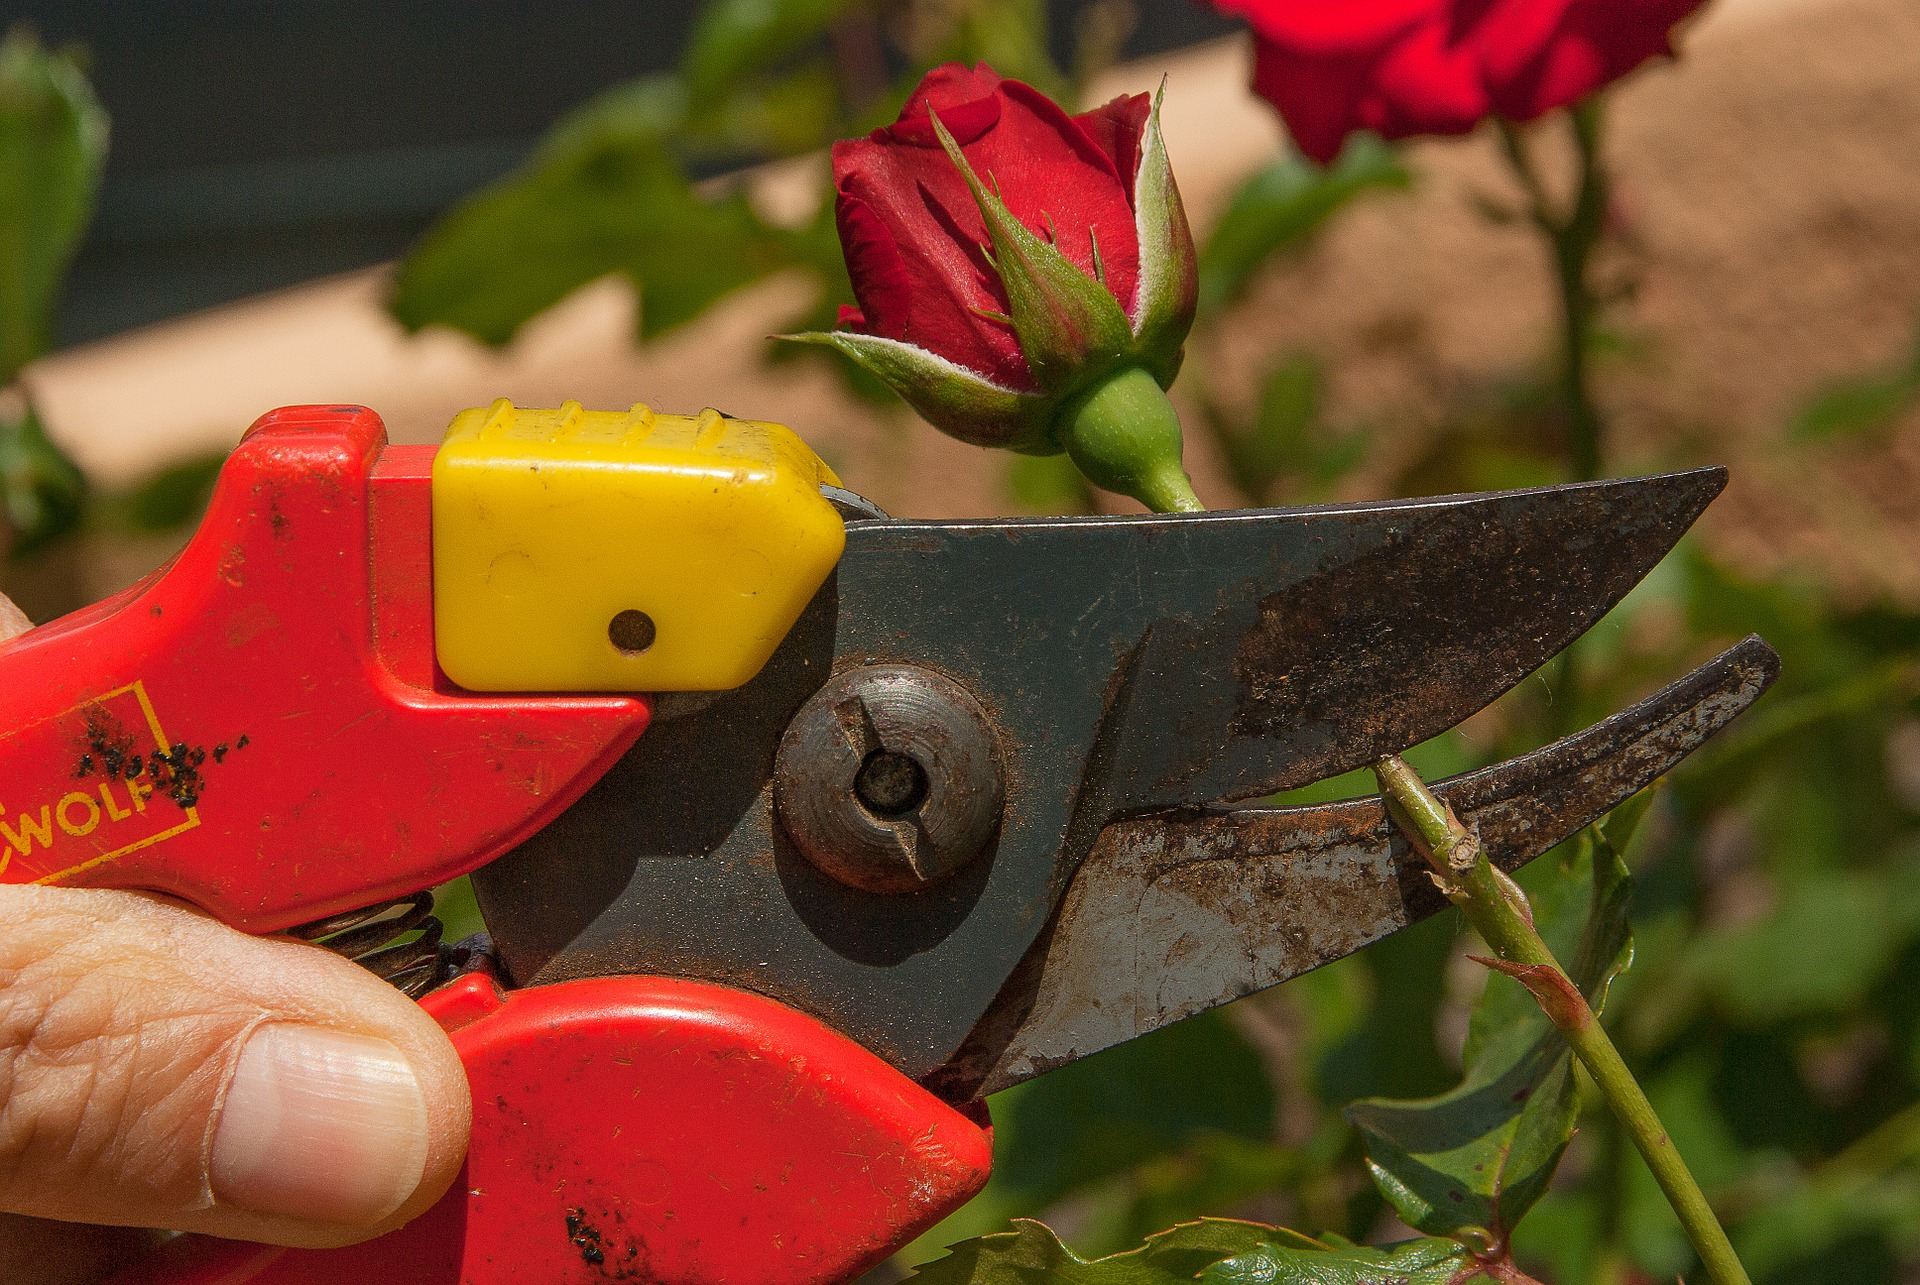 A Detailed Comparison for Manual vs Electrical vs Gas Powered Garden Shears